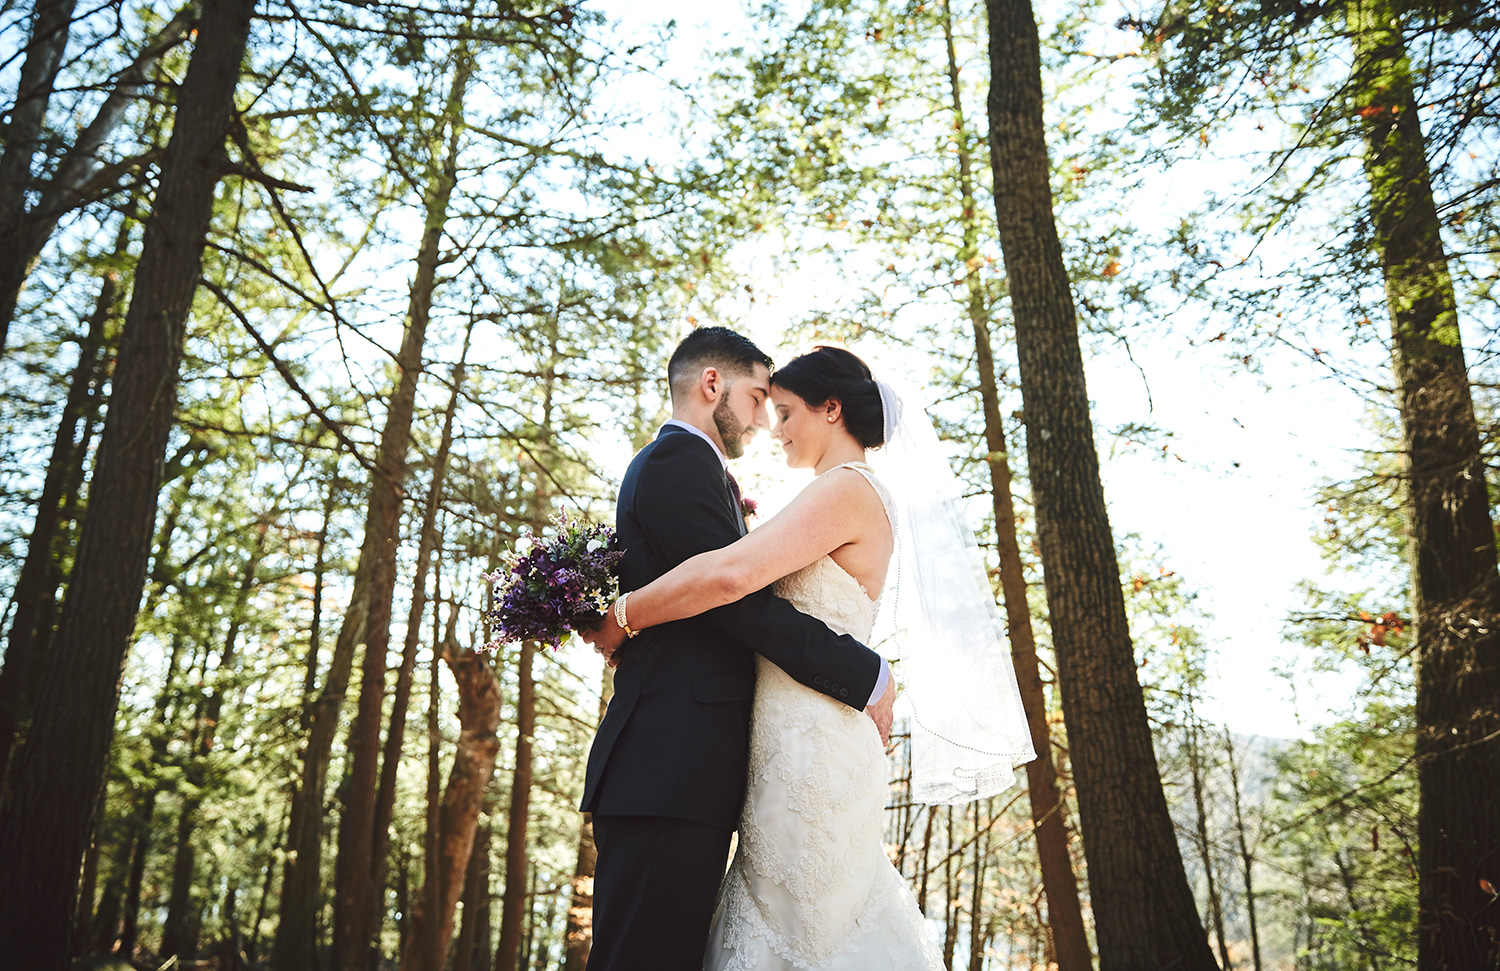 161119_ArrowParkLake&LodgeWedding_By_BriJohnsonWeddings_0071.jpg